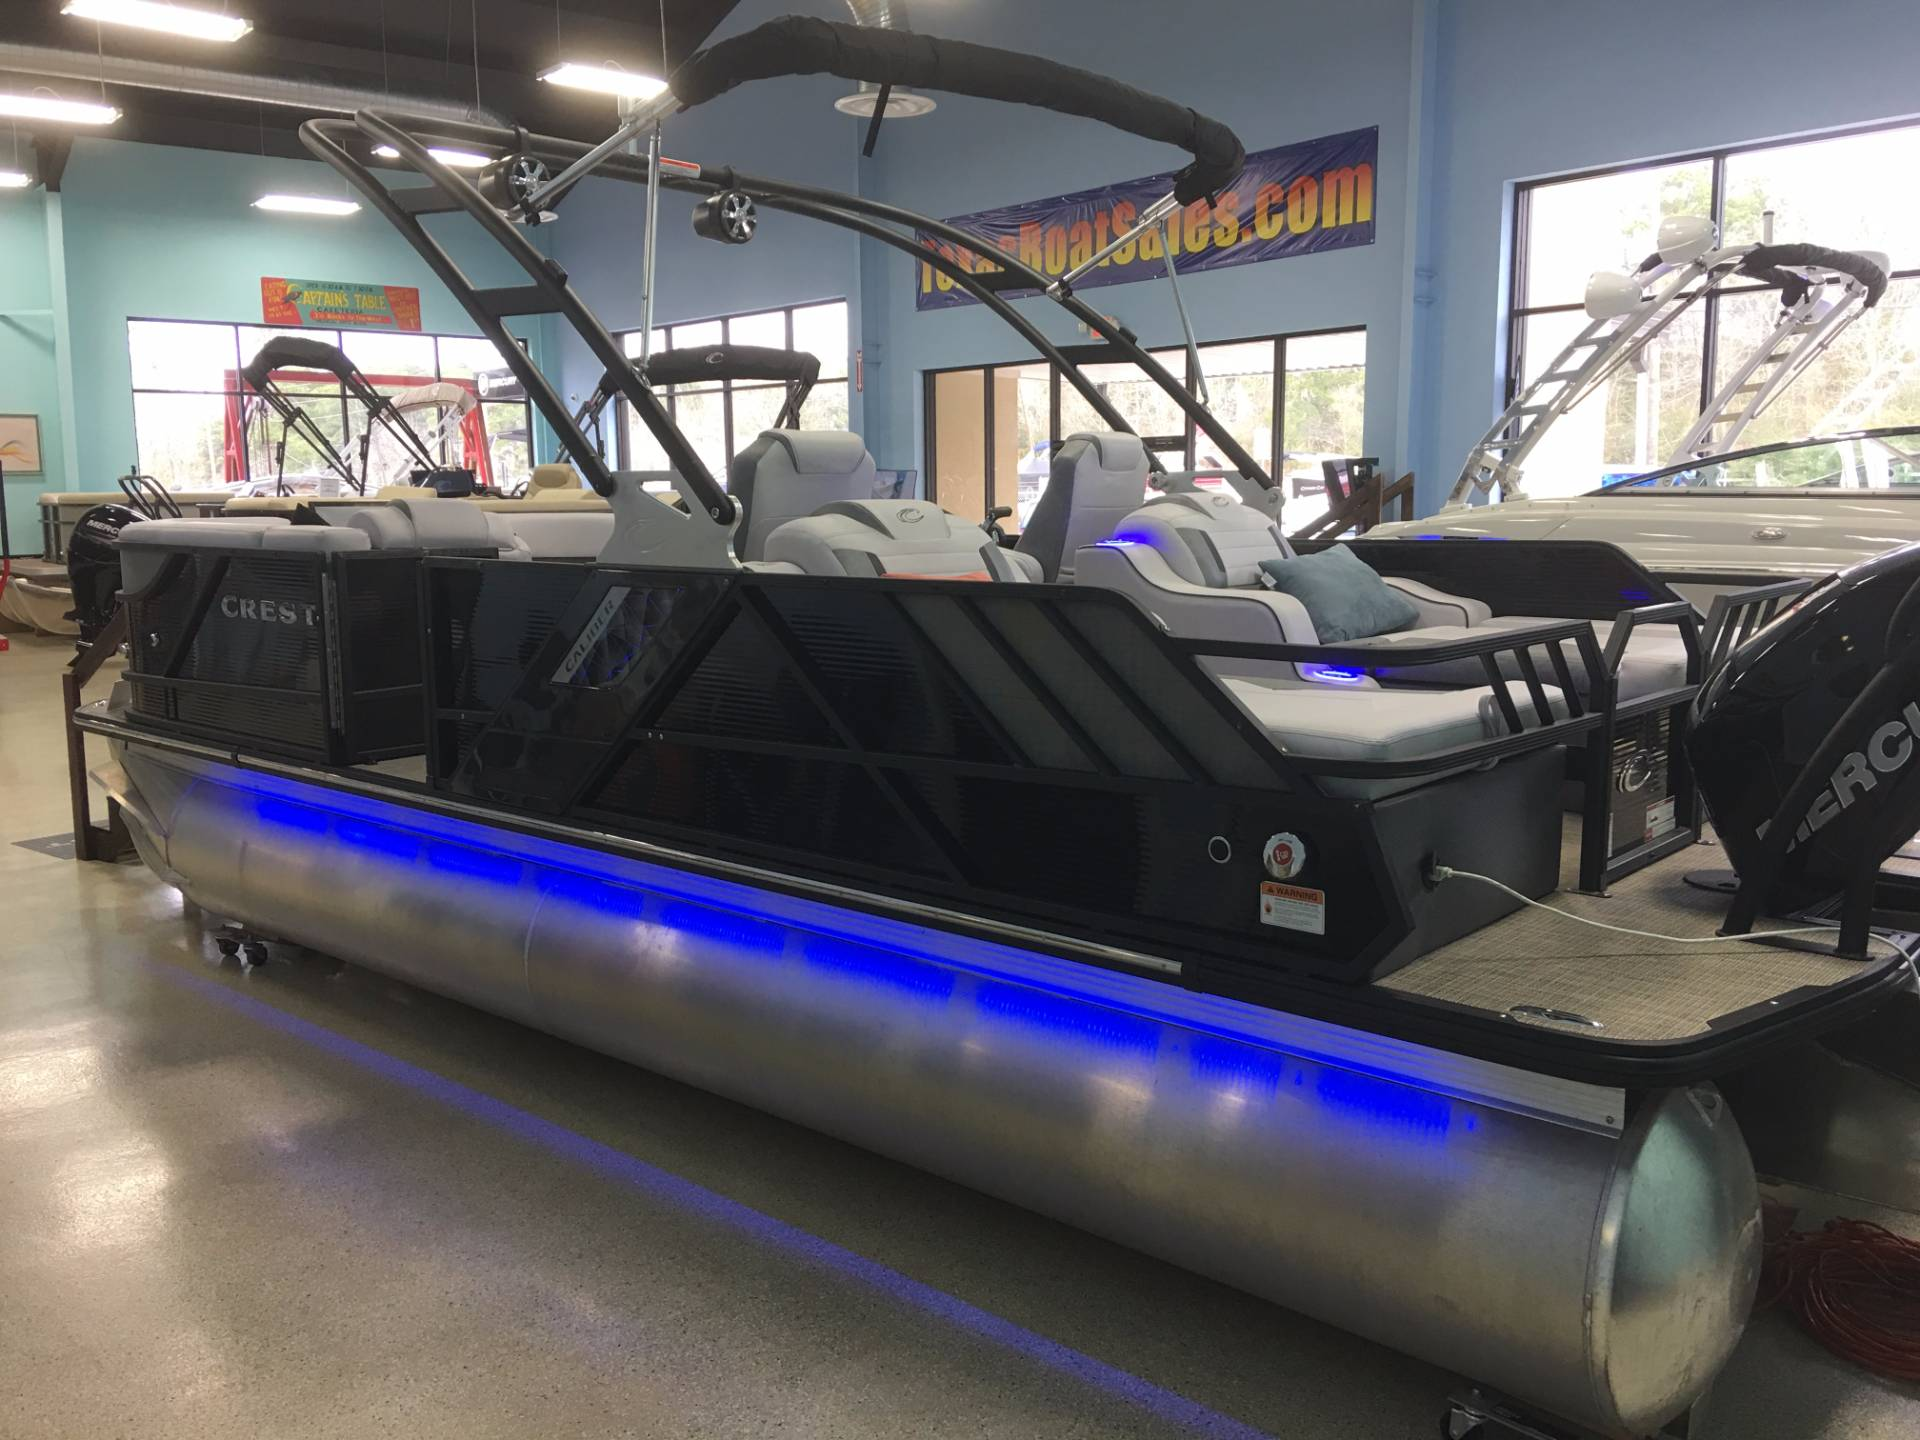 Crest Pontoon Boats Caliber 230 SLR2